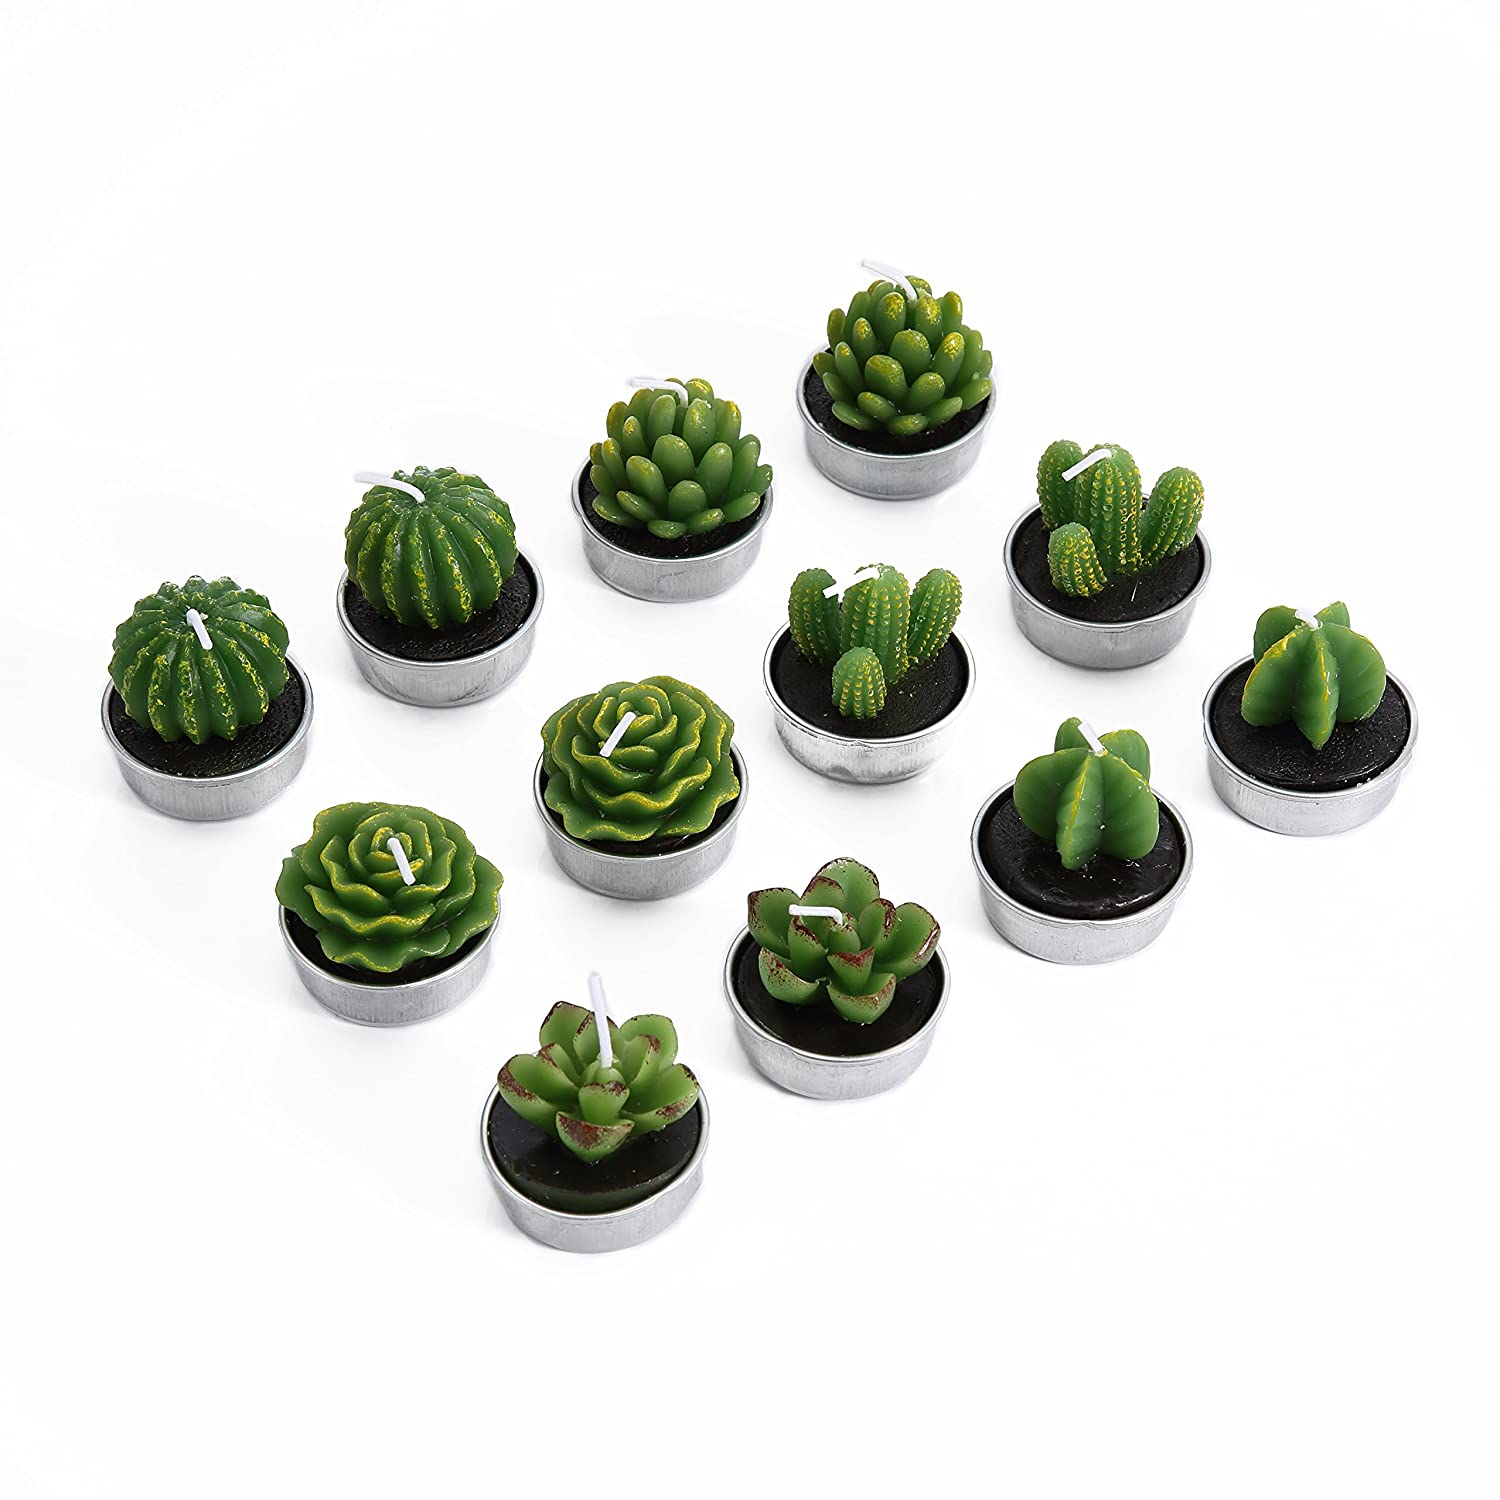 Amazon.com: Hahihi Decorative Scented Smokeless Cactus Tealight ...